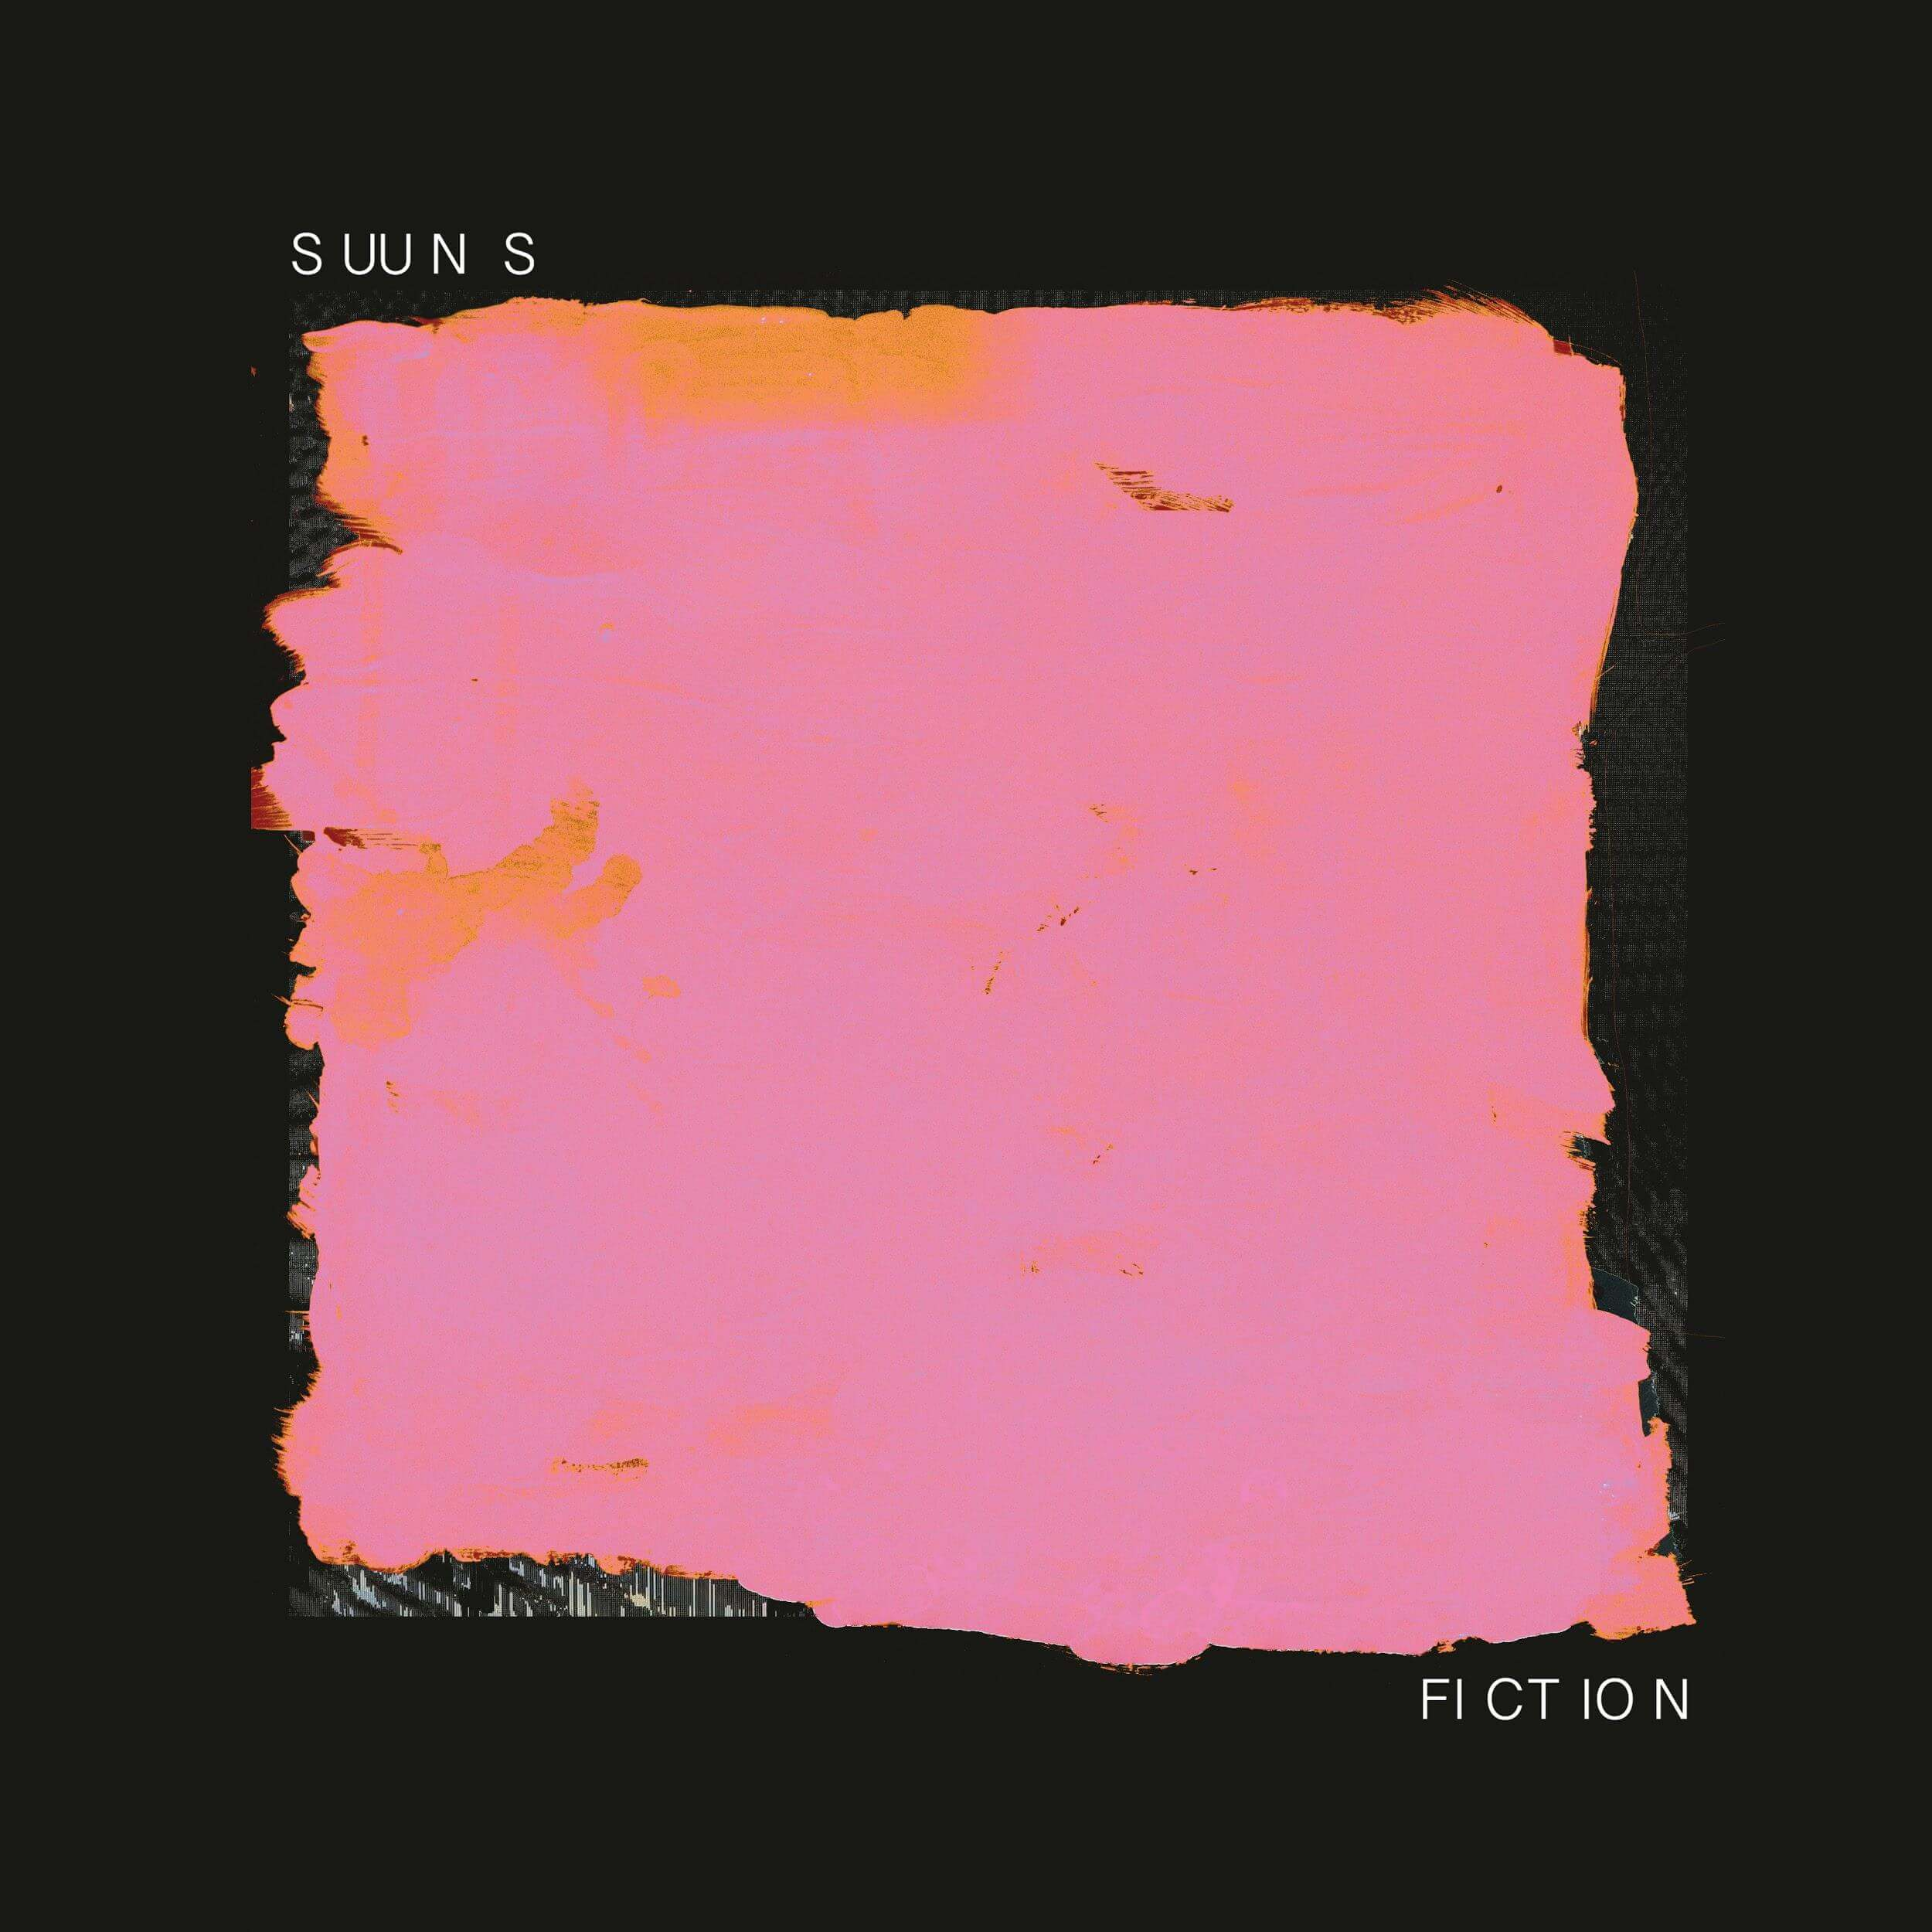 Fiction by Suuns album review by Hayden Godfrey for Northern Transmissions